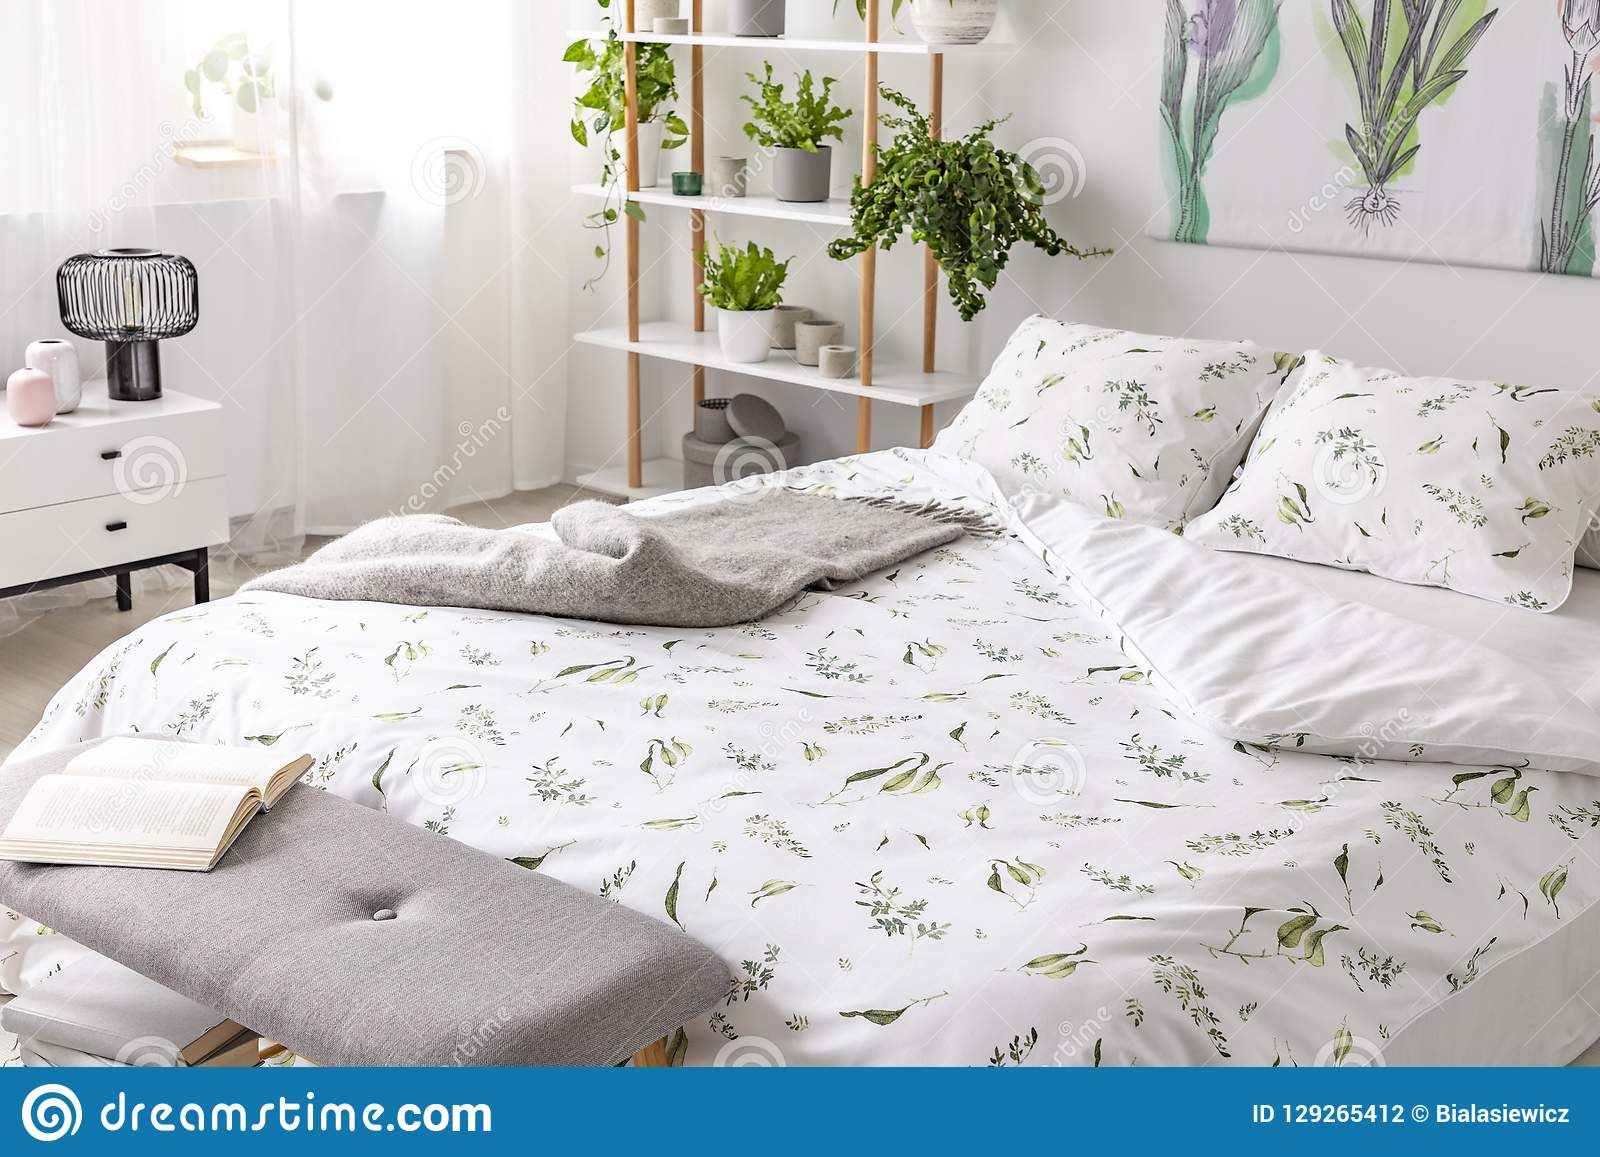 Green plant pattern on white bedding and pillows on a bed in a nature loving bedroom interior